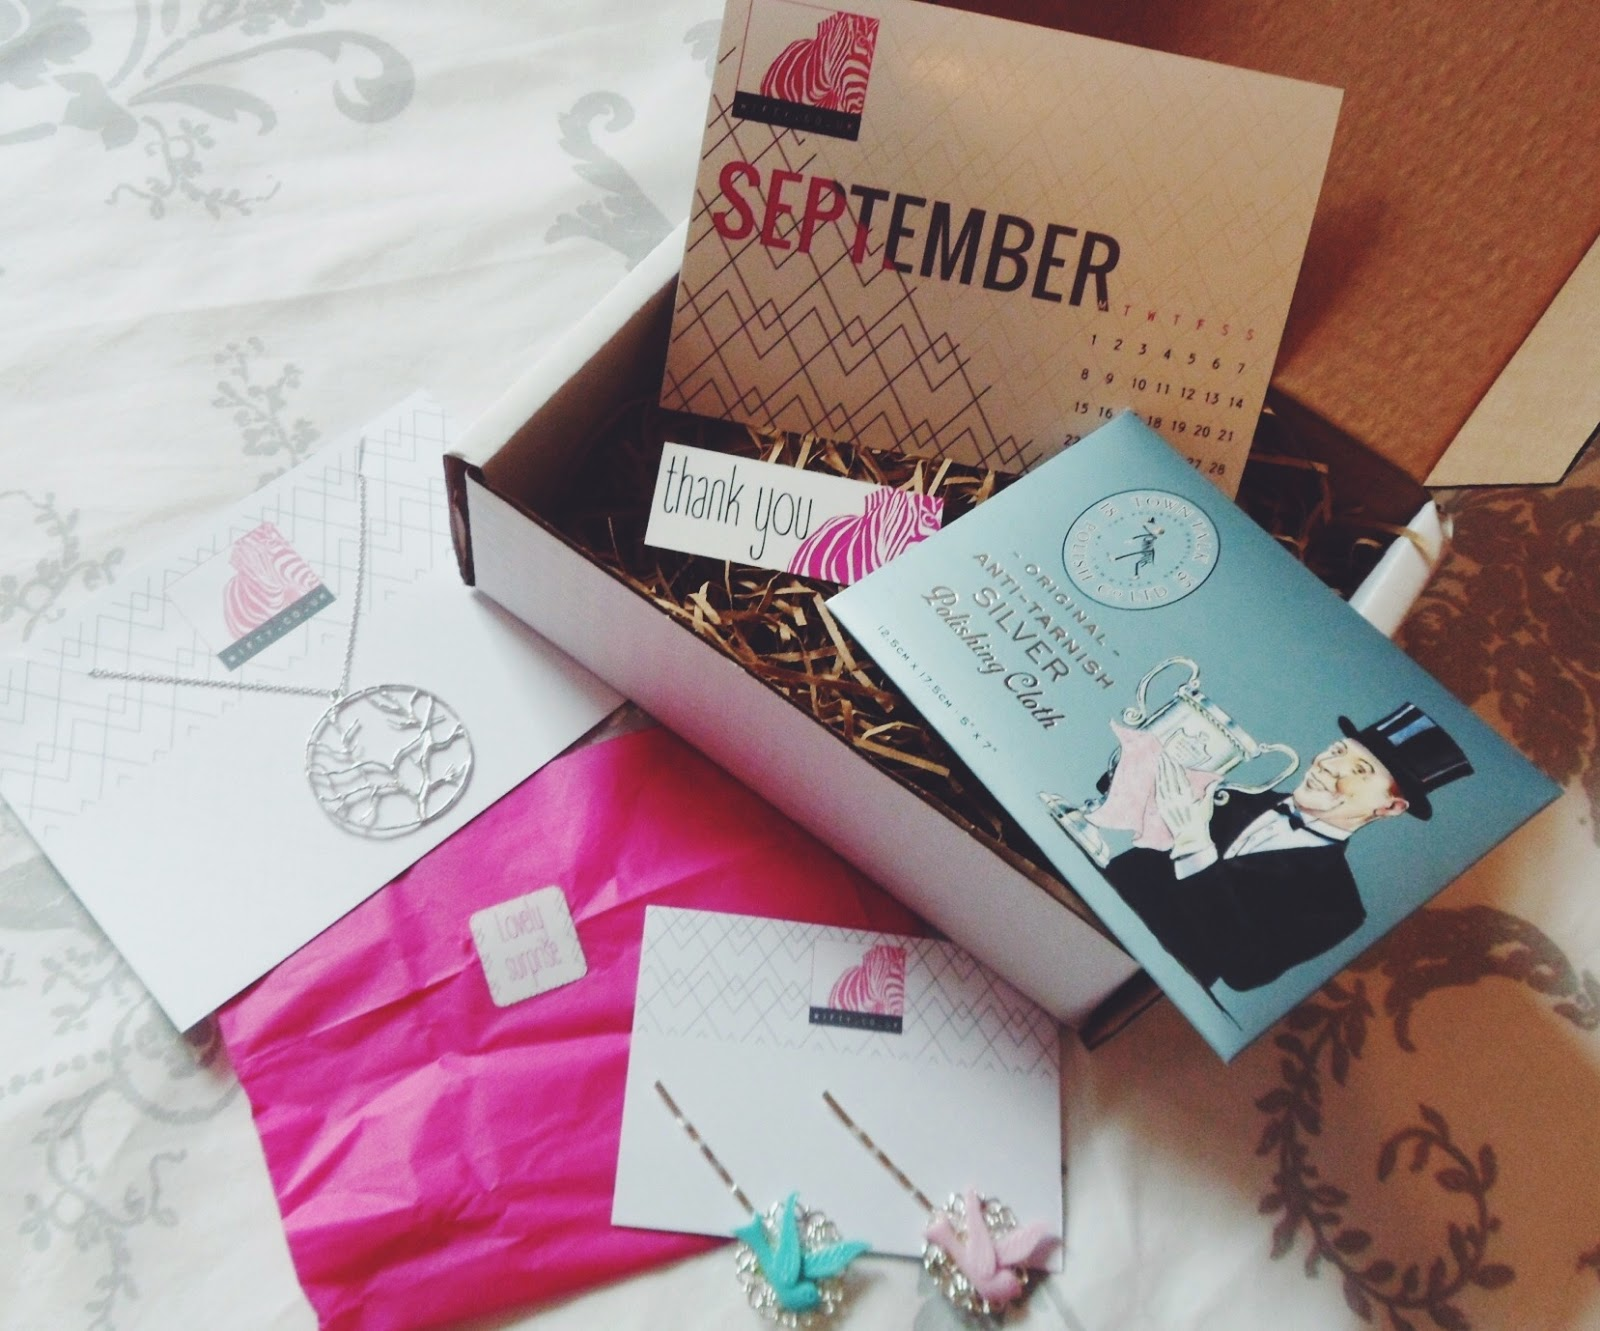 wifty, uk, newbrand, jewellery, accessories, british, wiw, ootd, fbloggers, fashionbloggers, septemberbox, septemberedition, designers, asseenonme, birchbox, glossybox, necklace, hairclips